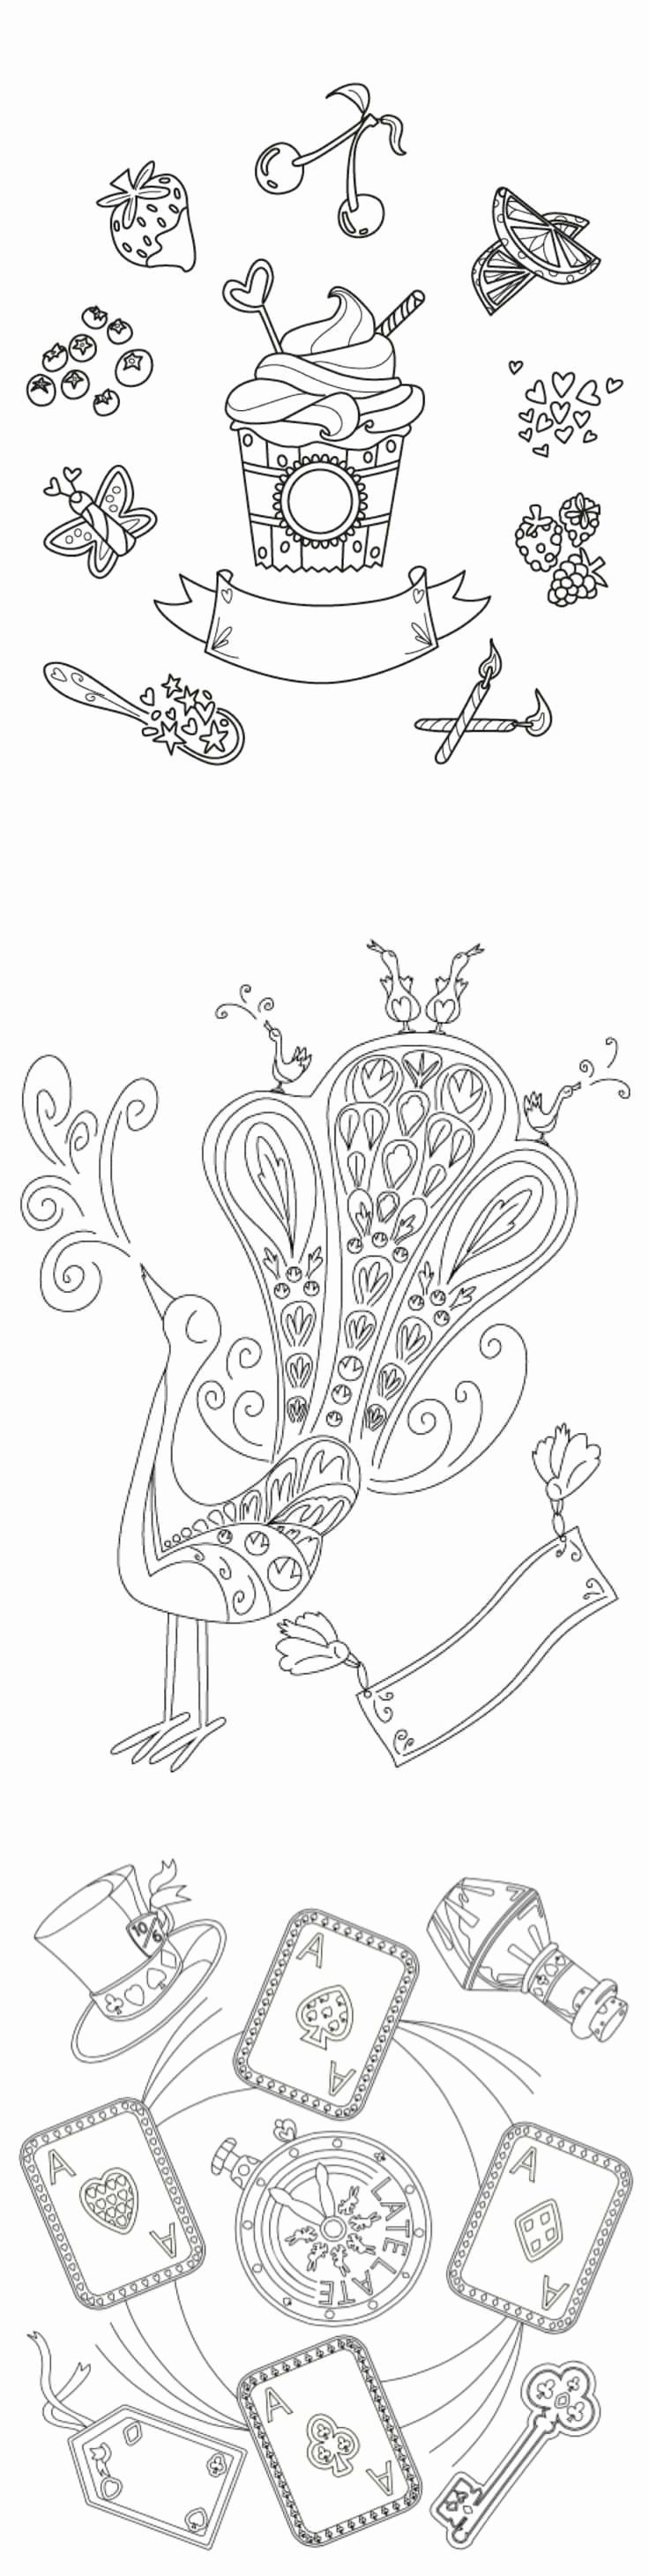 State Bird Coloring Page Lovely Pennsylvania State Bird Flower And Flag Flowers Healthy Bird Coloring Pages Coloring Pages Drawing Accessories